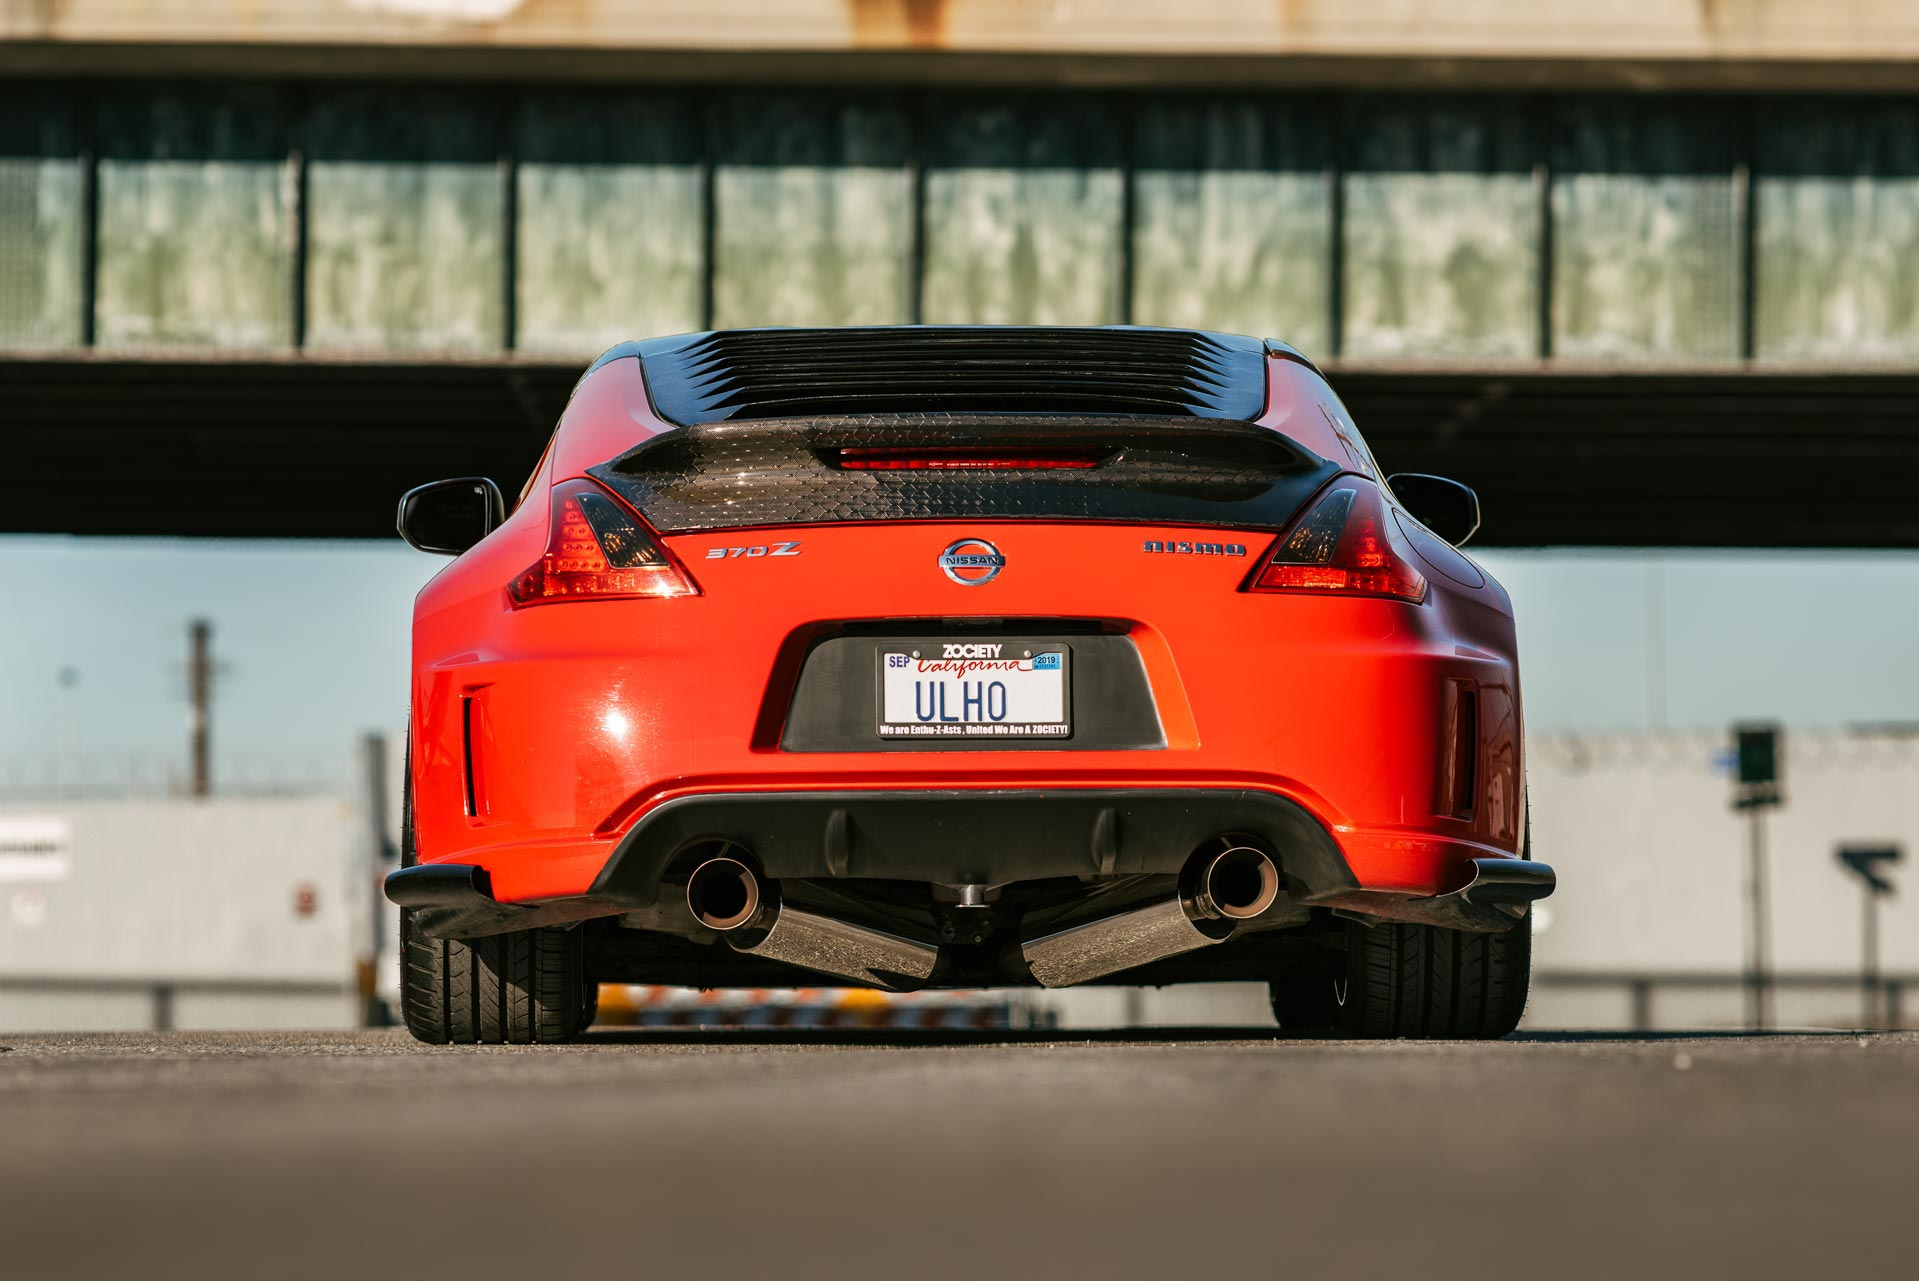 Nissan 370Z with ultra-high performance UHP tires